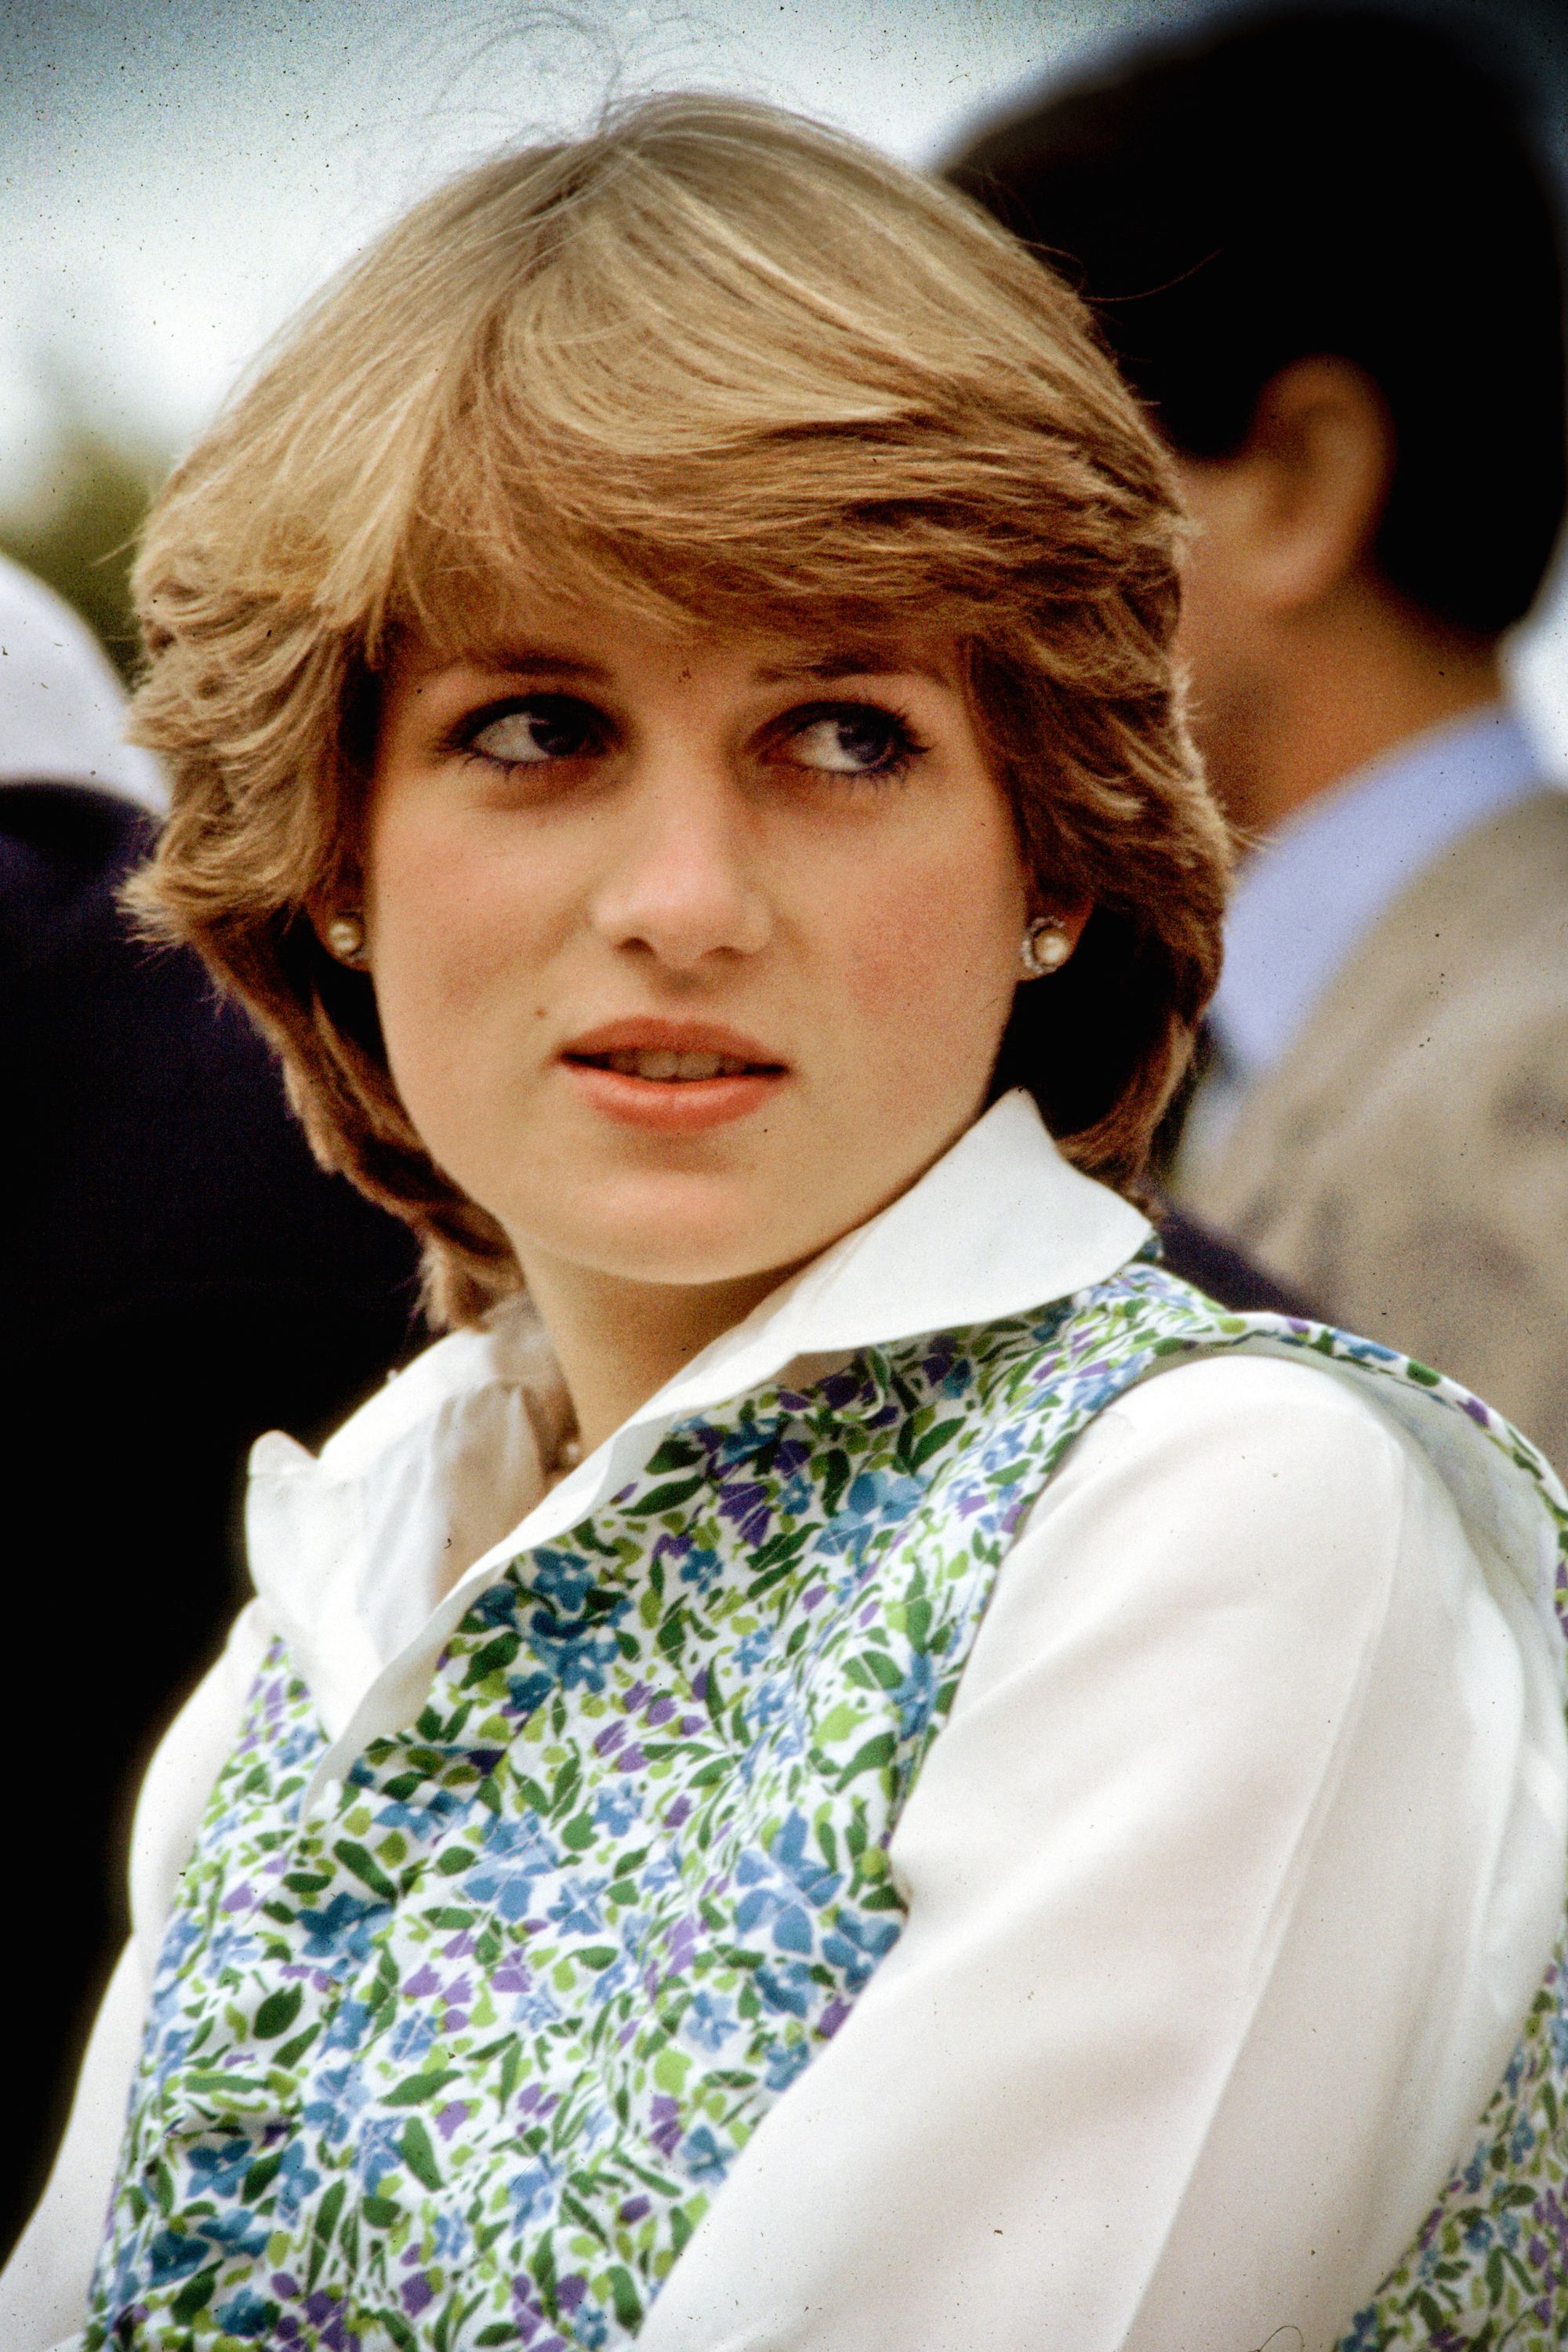 15 photos that show what Princess Diana was like before